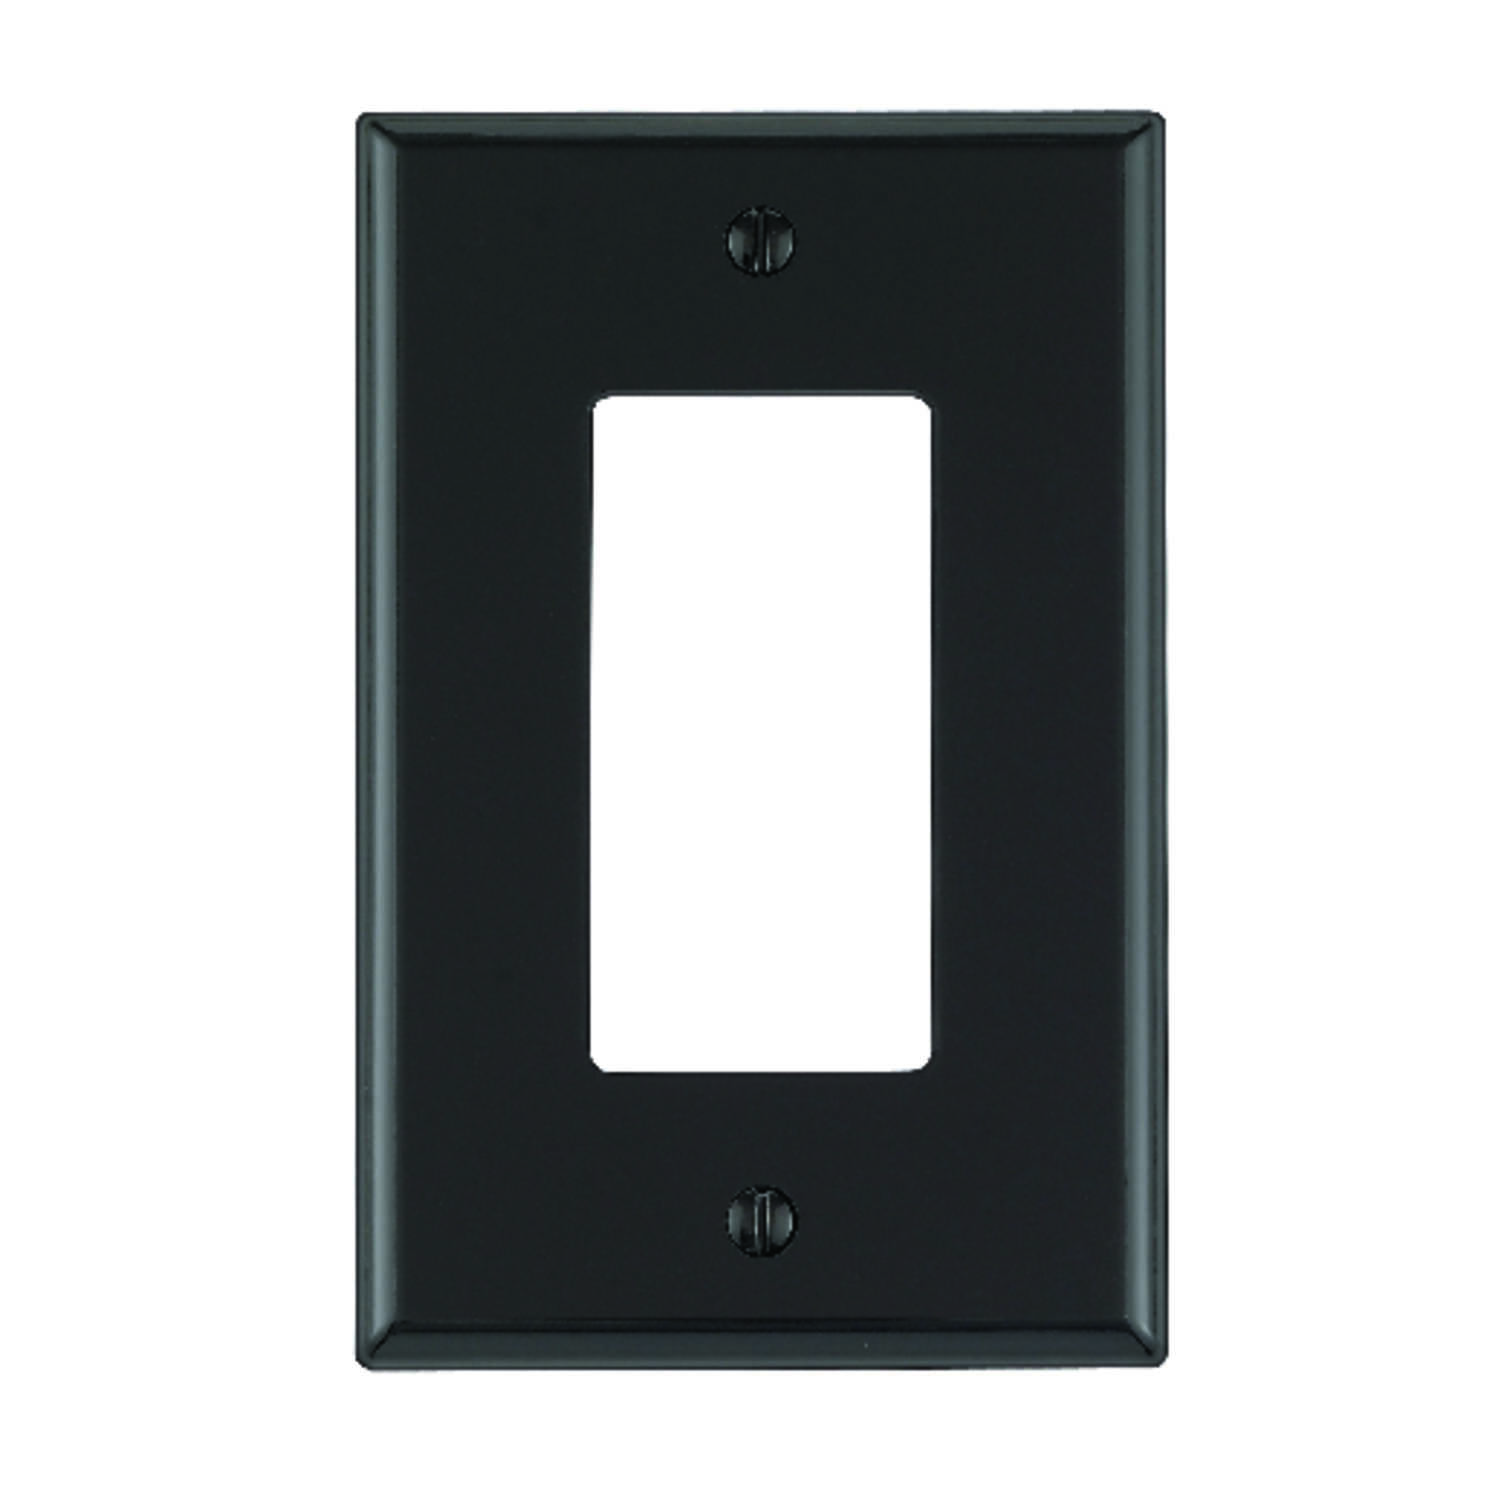 Leviton  Black  1 gang Nylon  GFCI/Rocker  Wall Plate  1 pk